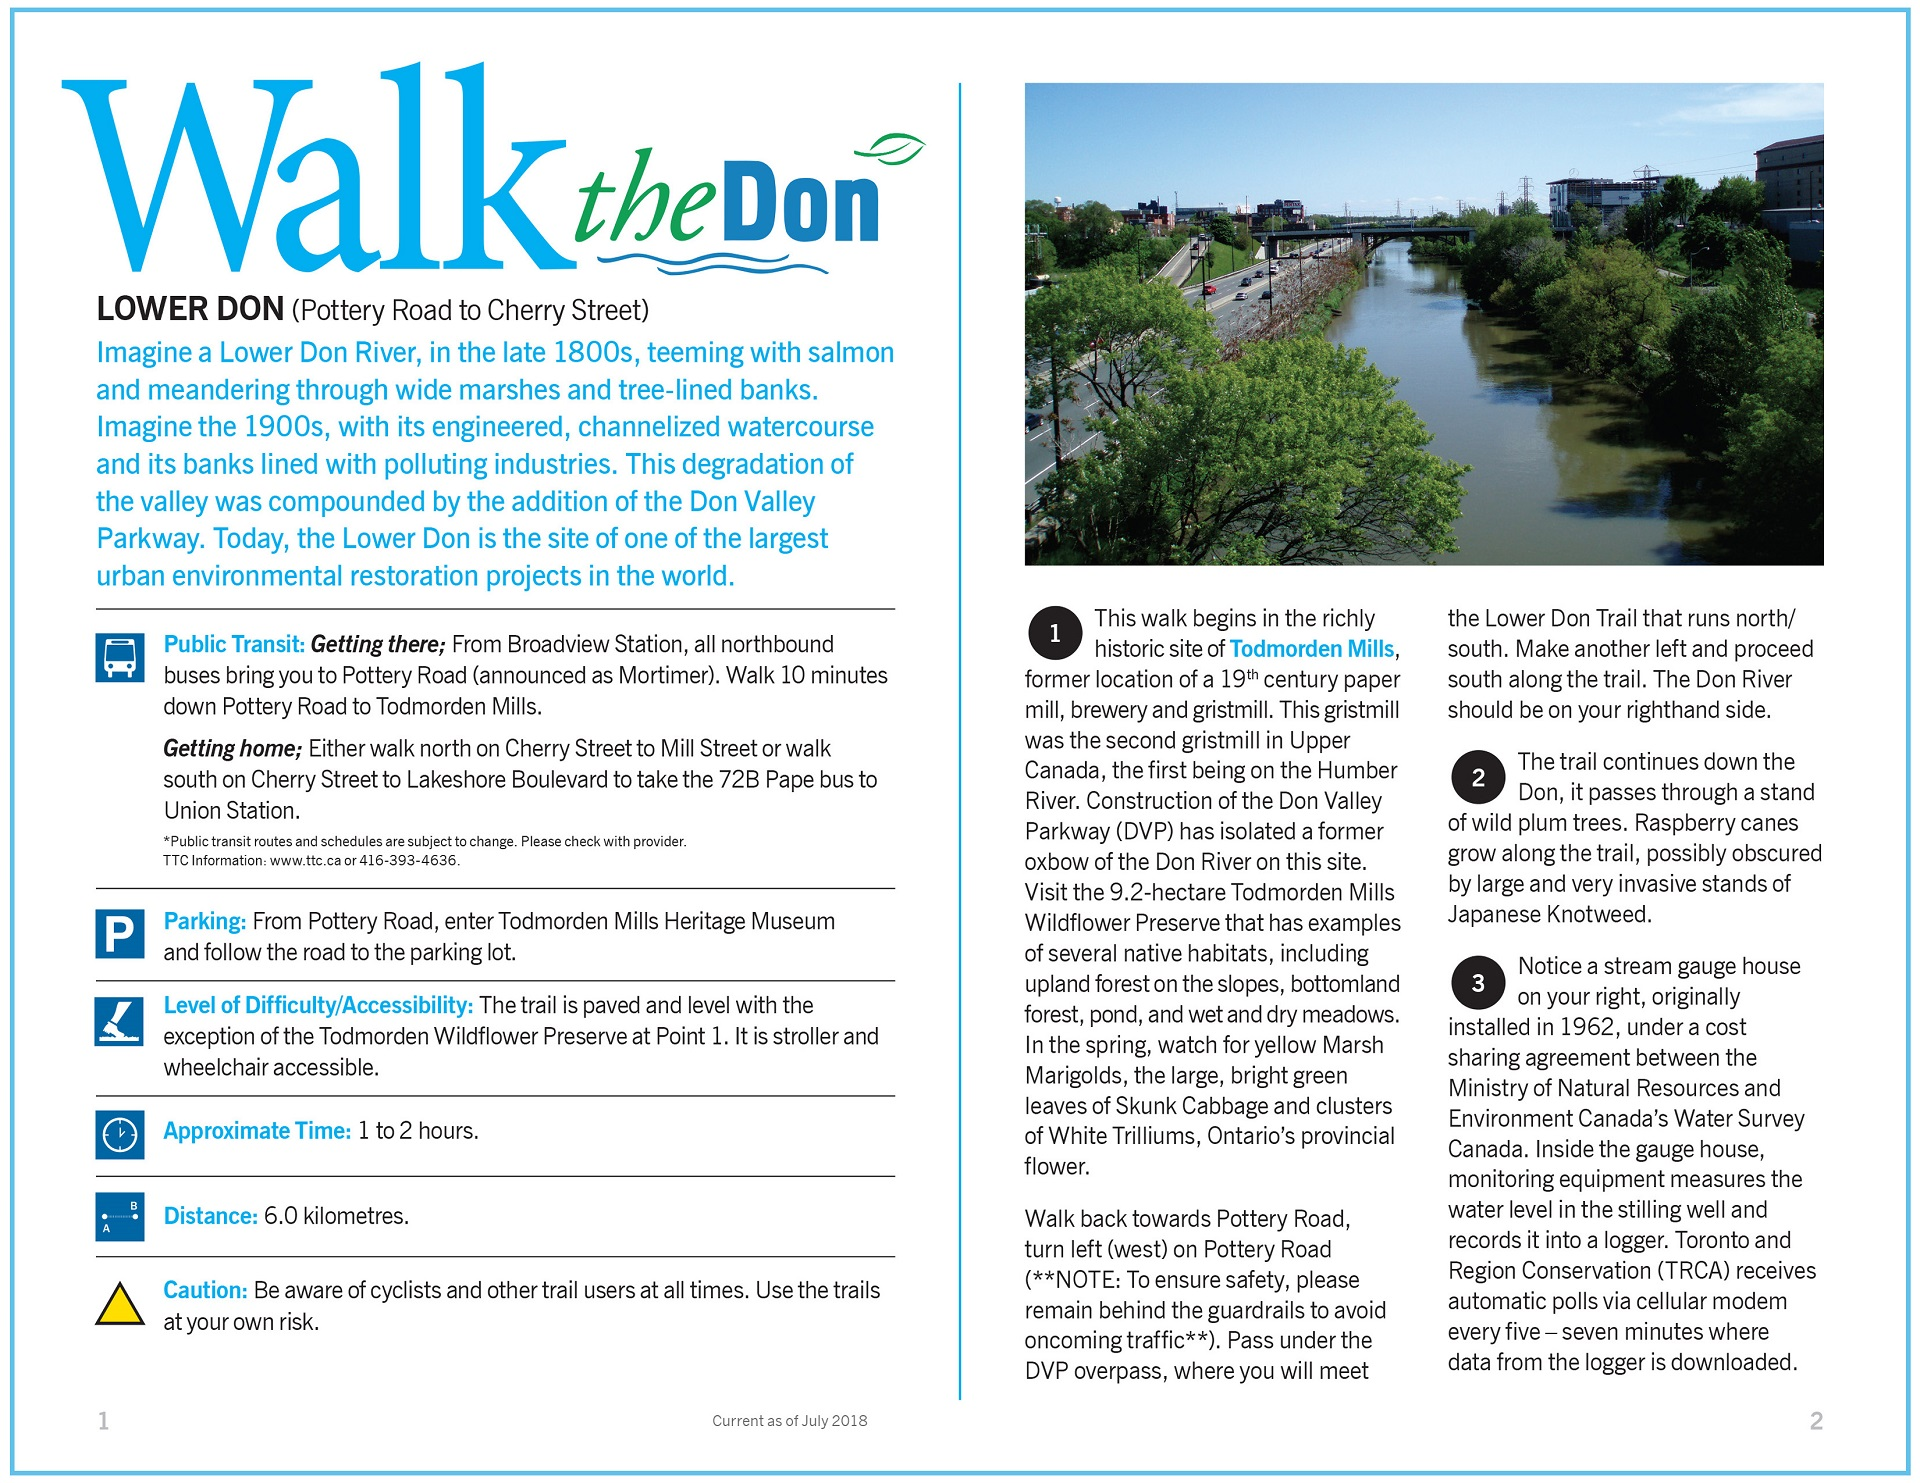 Walk the Don - Lower Don Trail Guide